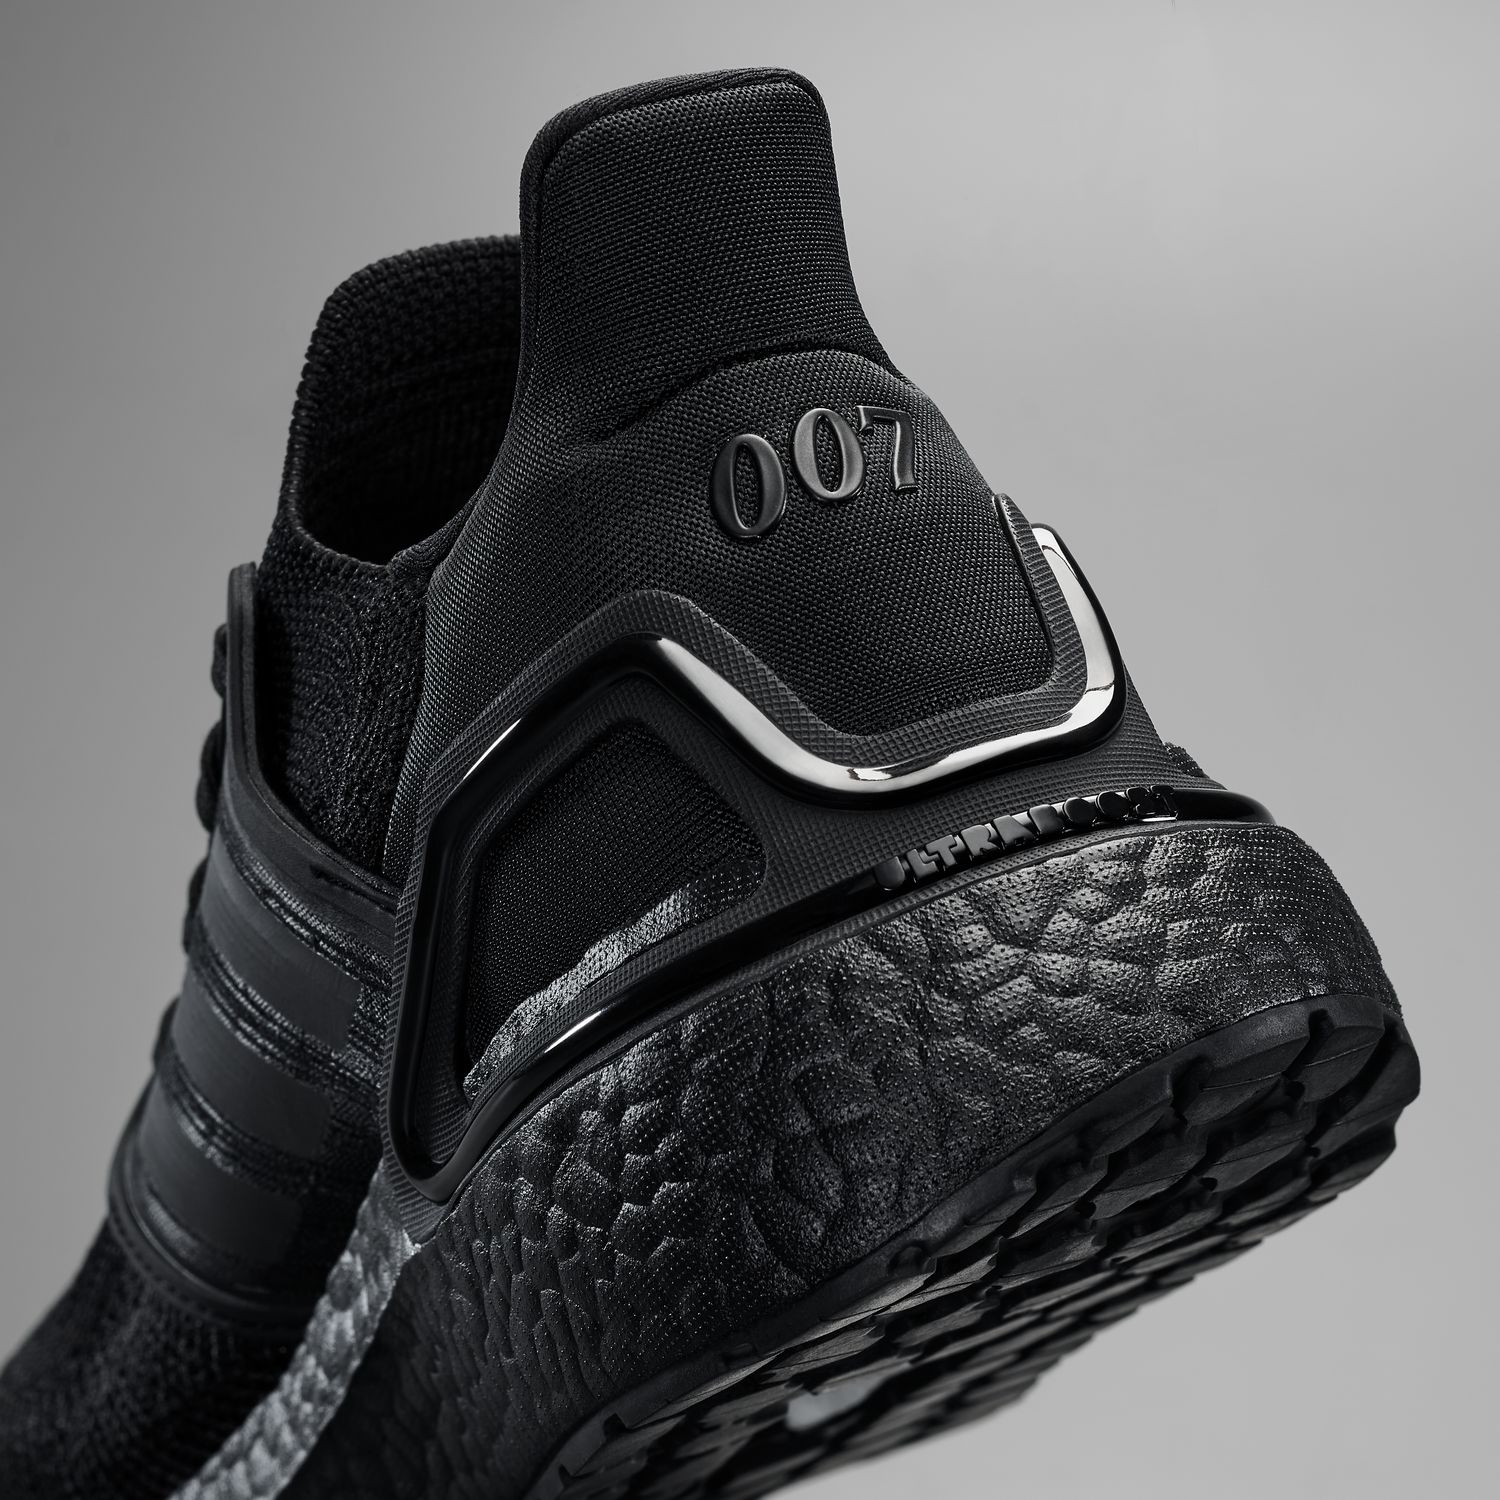 """adidas x James Bond - 007 Collection - """"No Time To Die"""" - UltraBOOST 20 Black Tuxedo"""